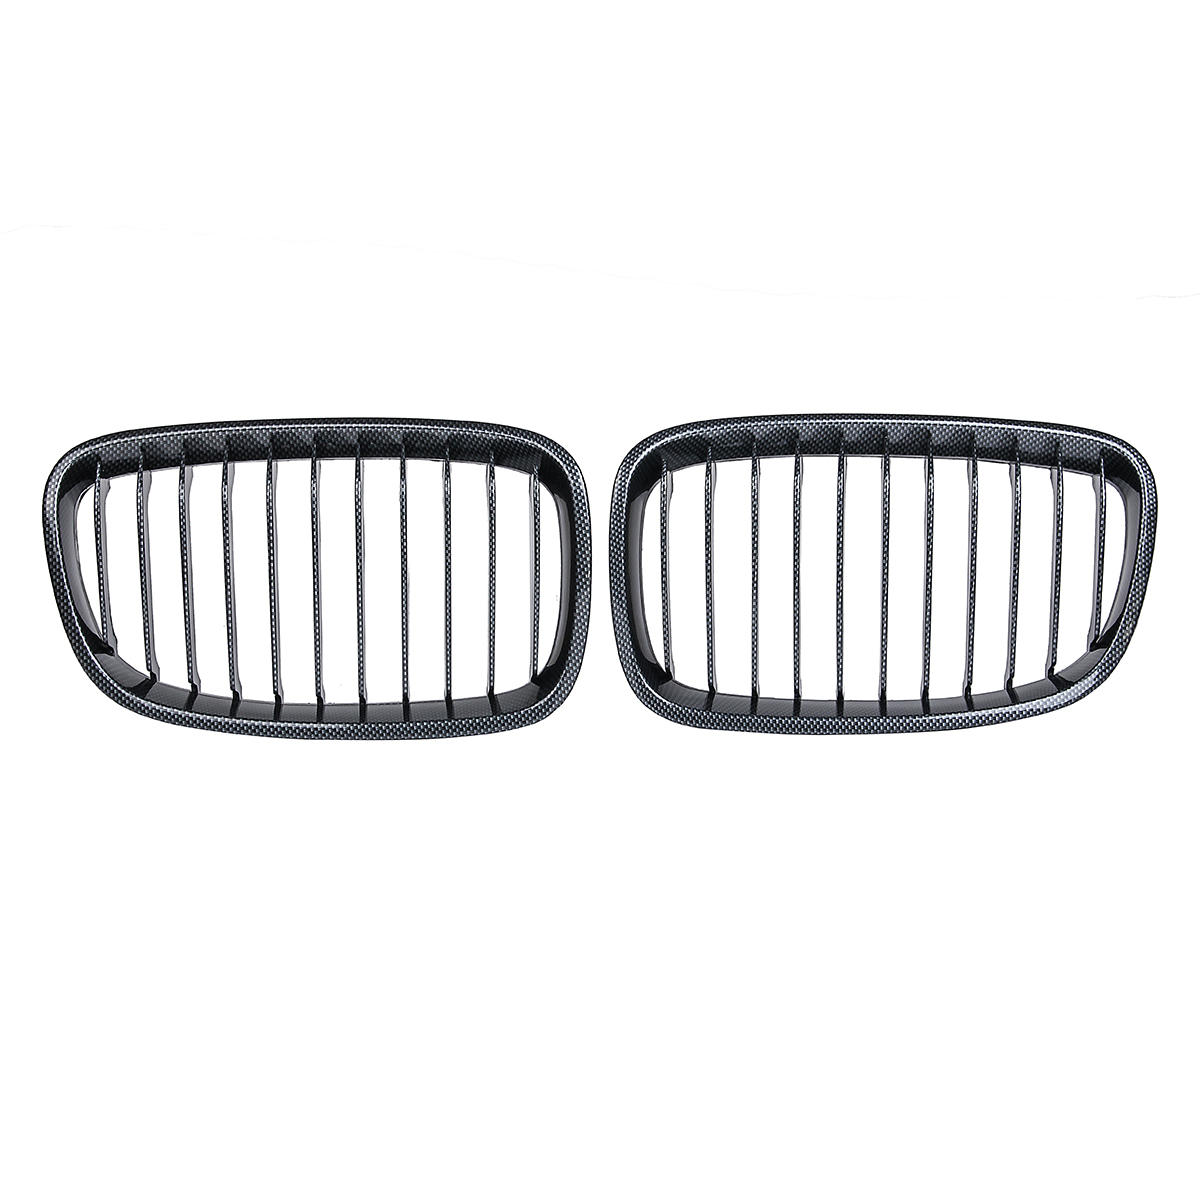 Pair Carbon Fiber Abs Front Kidney Grille For Bmw F20 F21 Sale